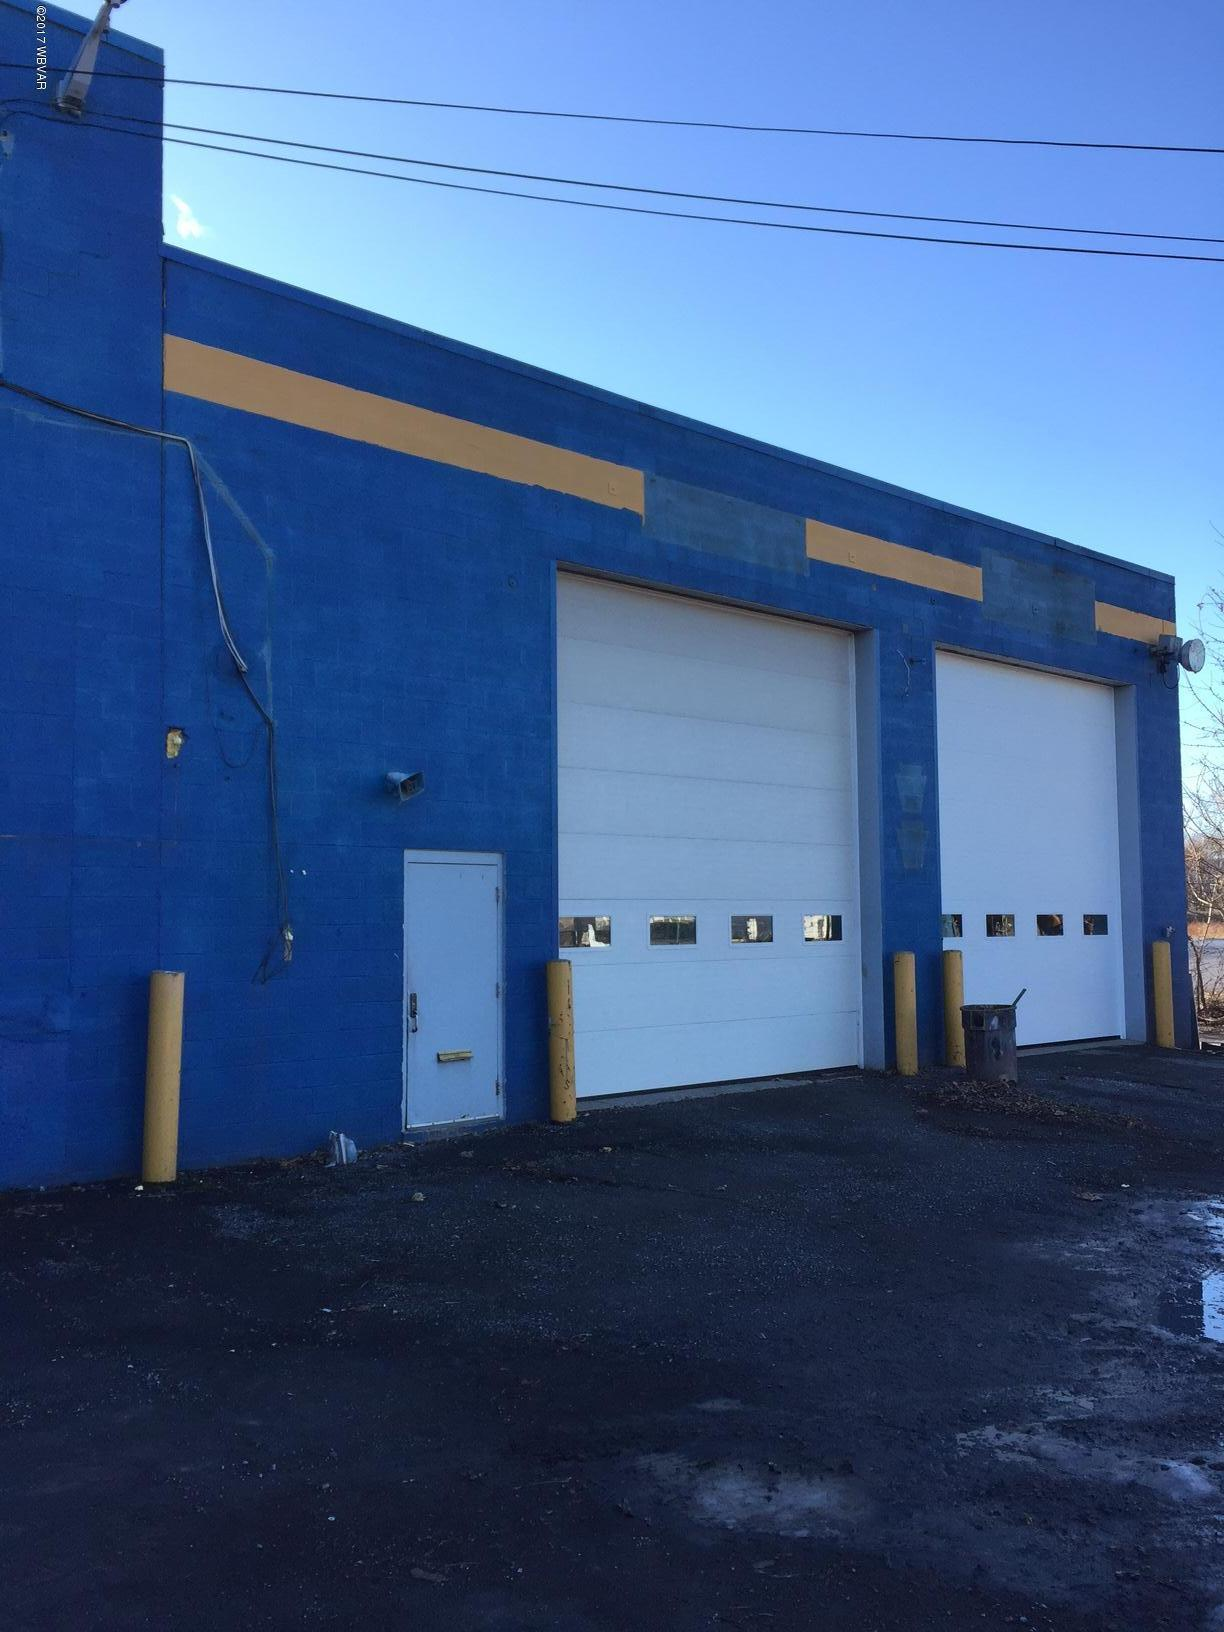 1315 3RD STREET,Williamsport,PA 17701,1 BathroomBathrooms,Comm/ind lease,3RD,WB-87026